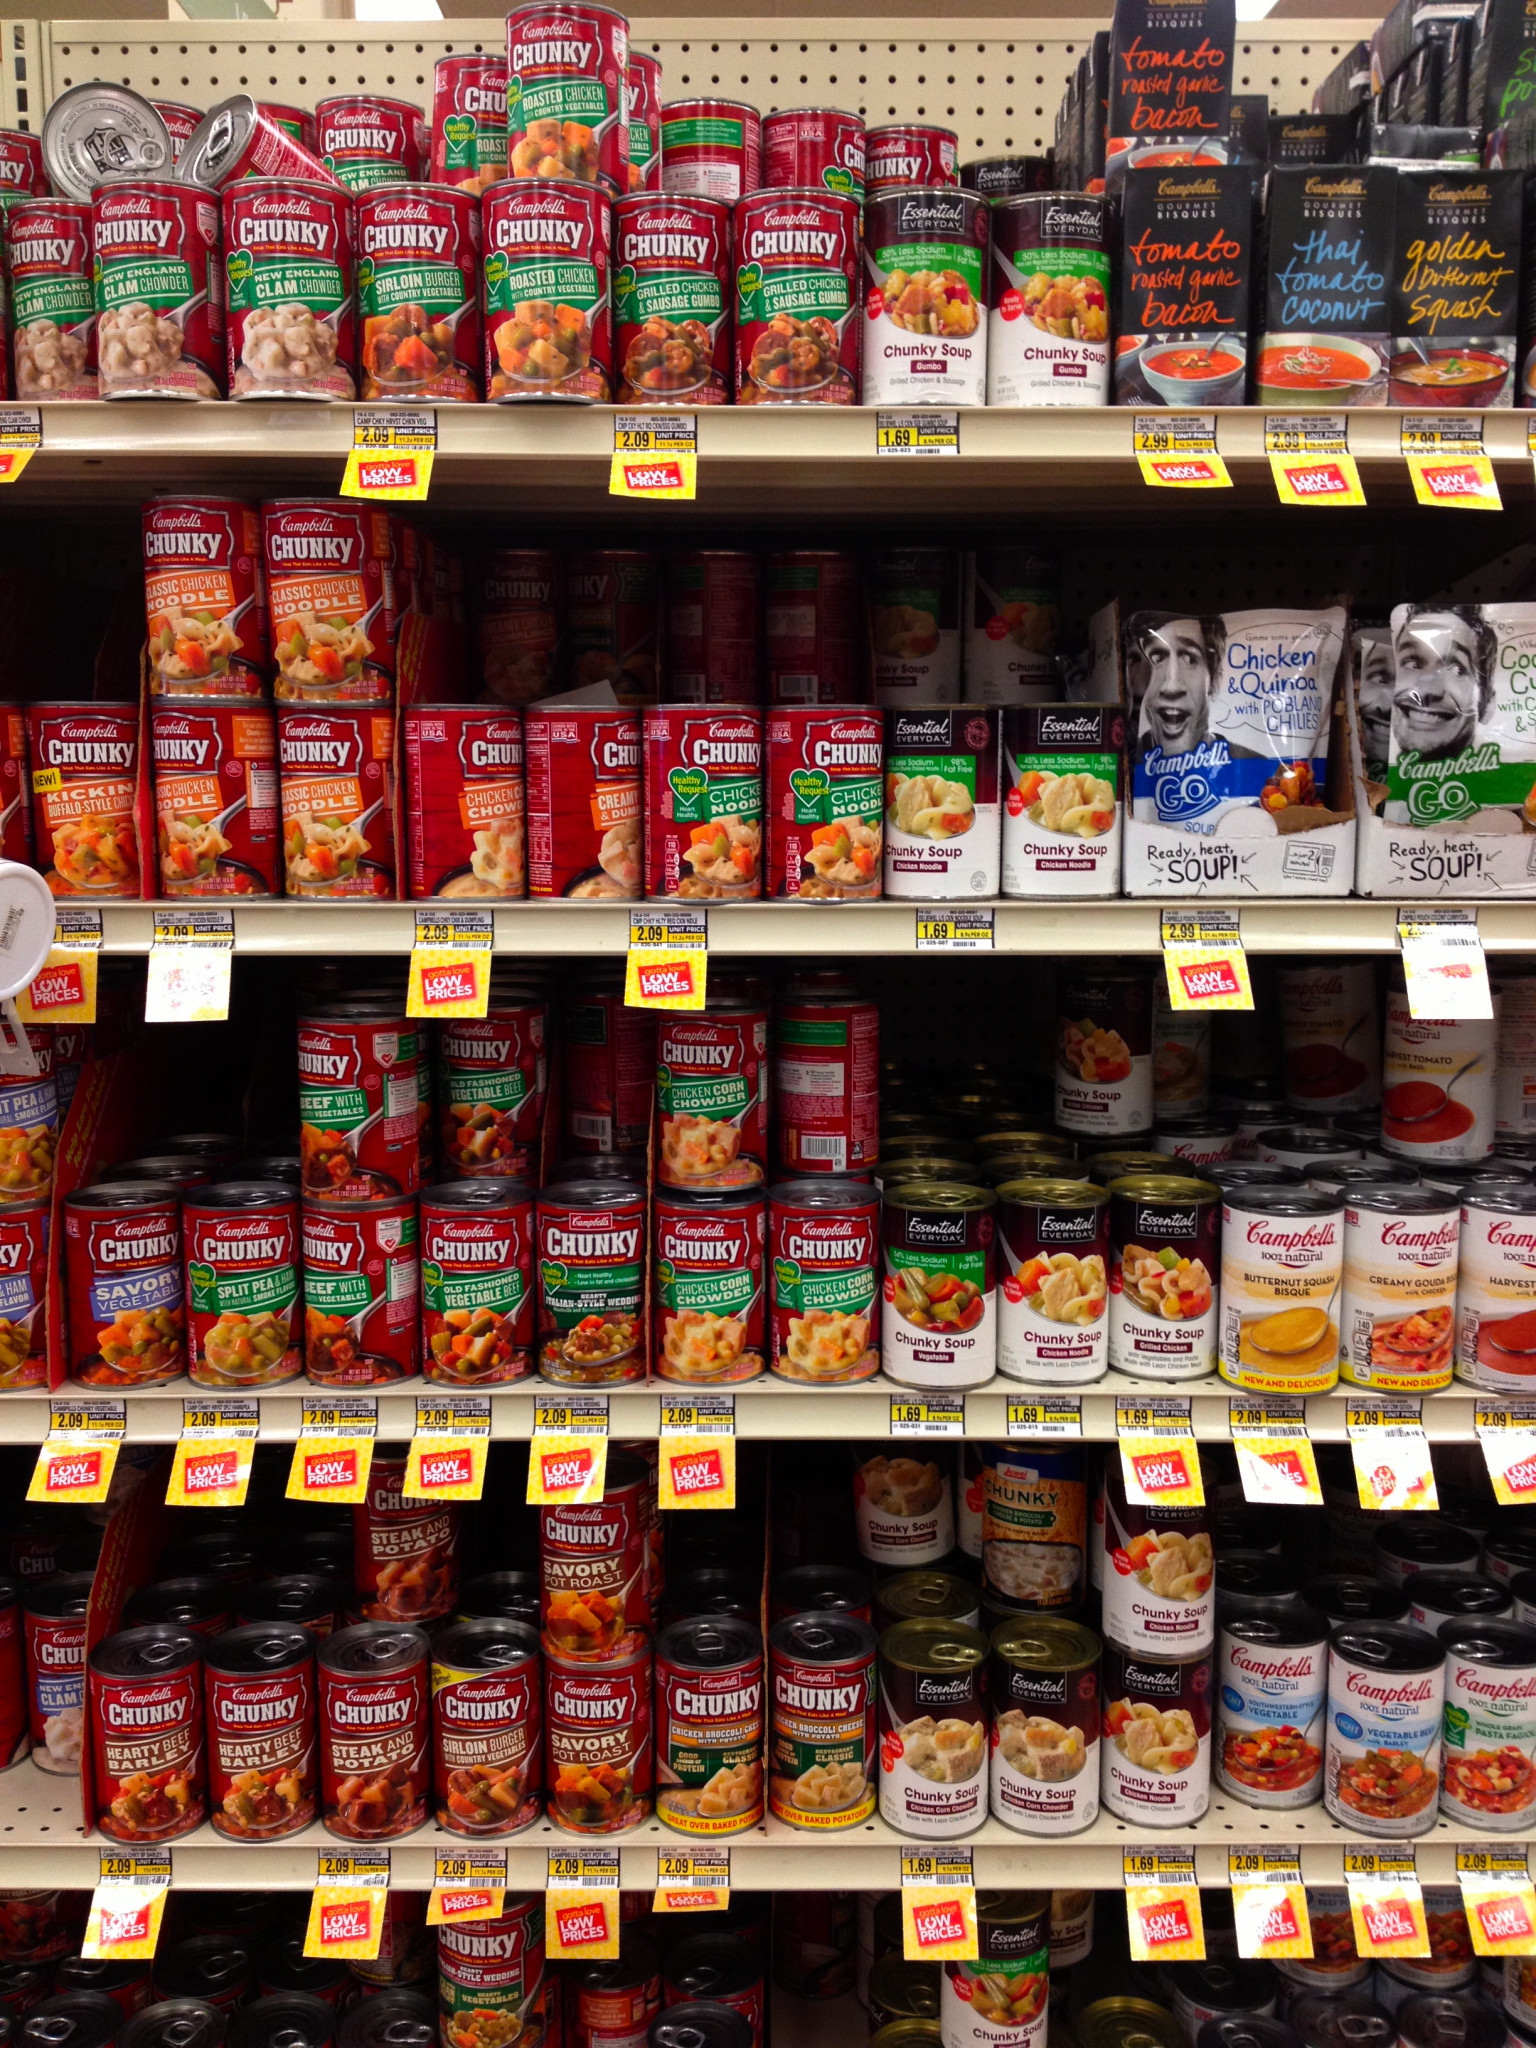 Photo: I was thrilled to see so much soup on sale! I can't get enough in the wintery months.